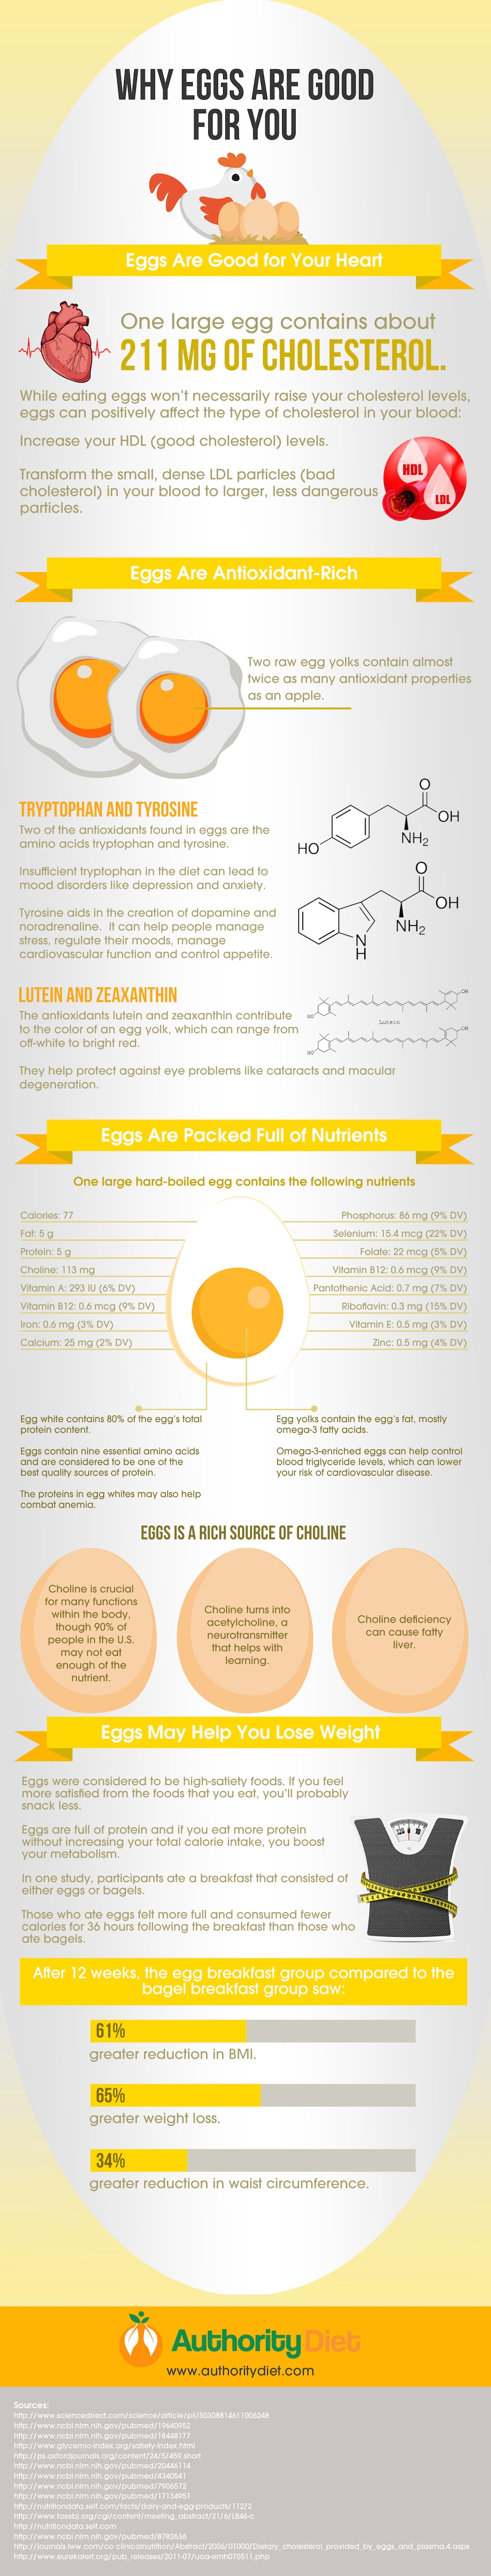 Are Eggs Good or Bad for You?